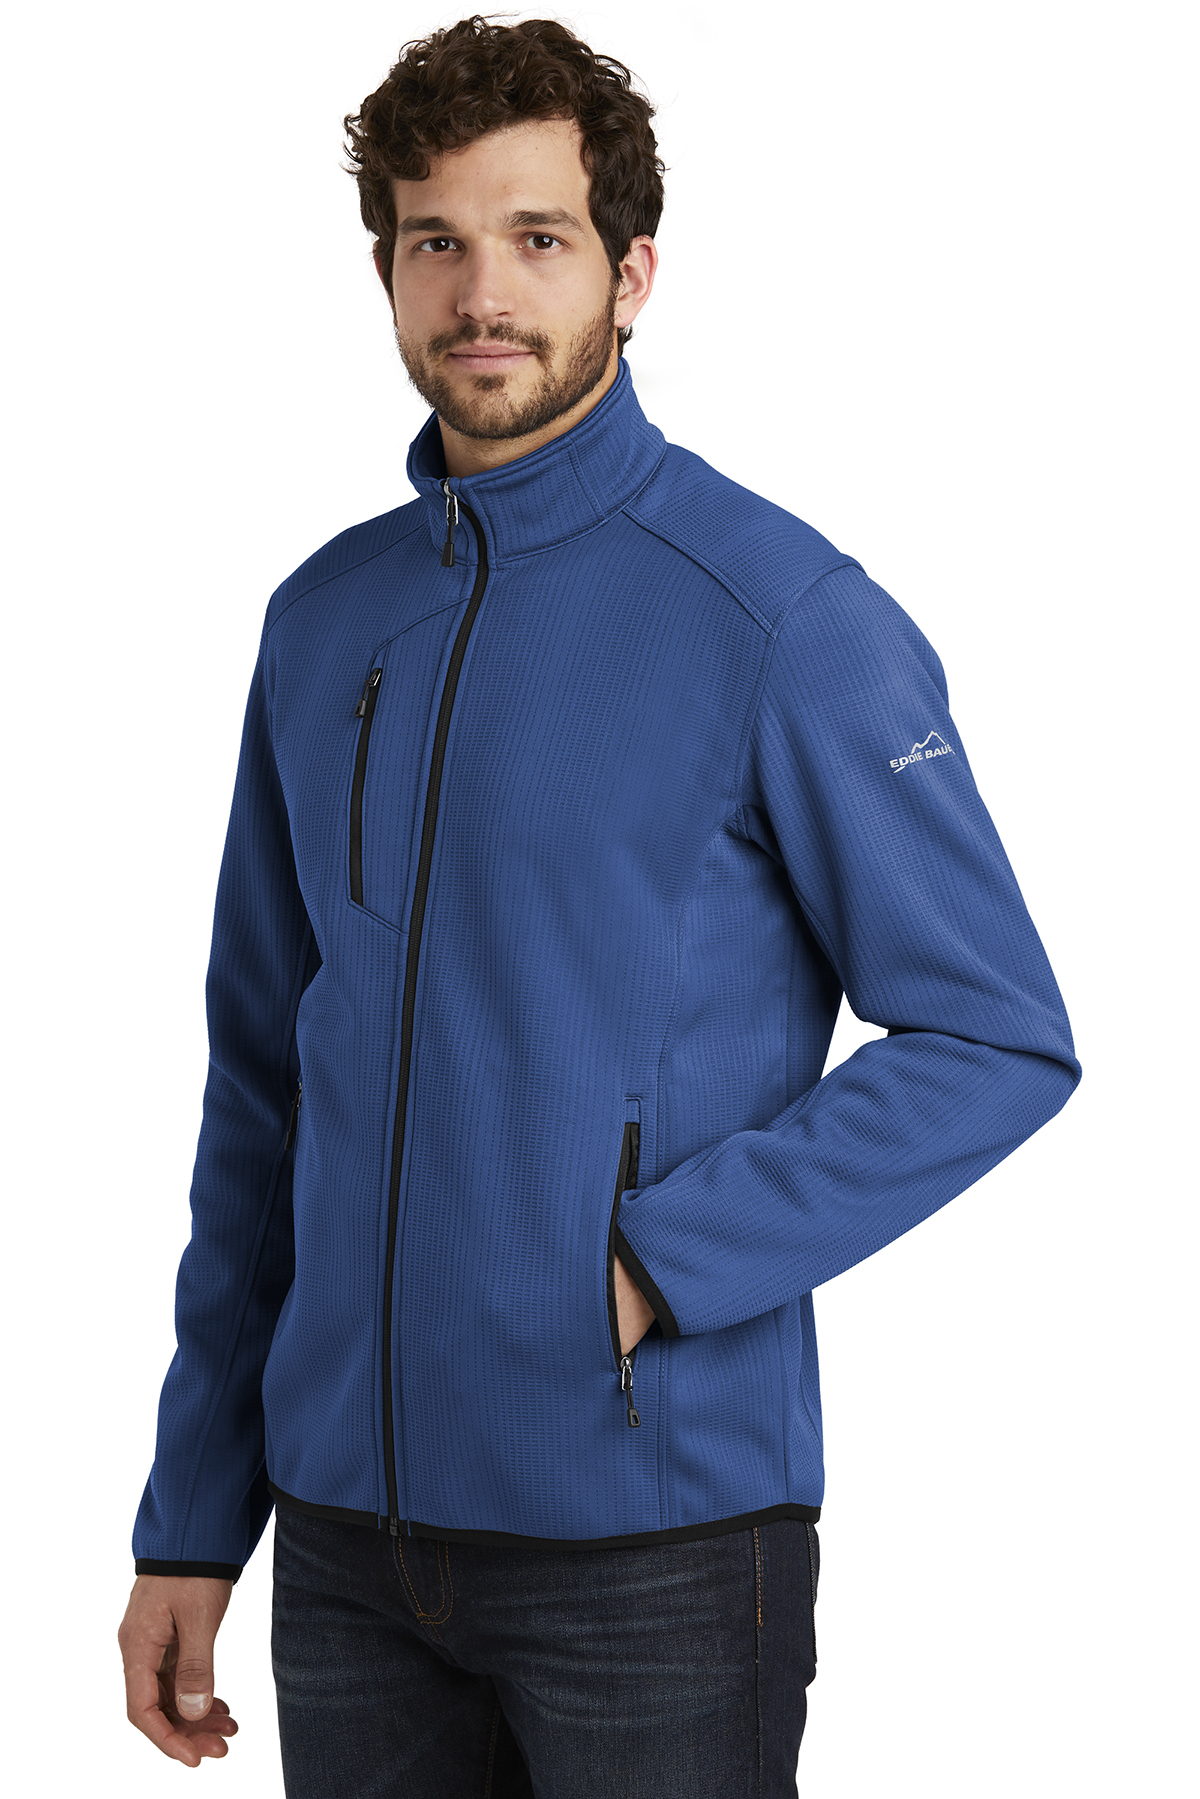 d3794646bdf ... Eddie Bauer ® Dash Full-Zip Fleece Jacket. A maximum of 8 logos have  been uploaded. Please remove a logo from My Logos to continue